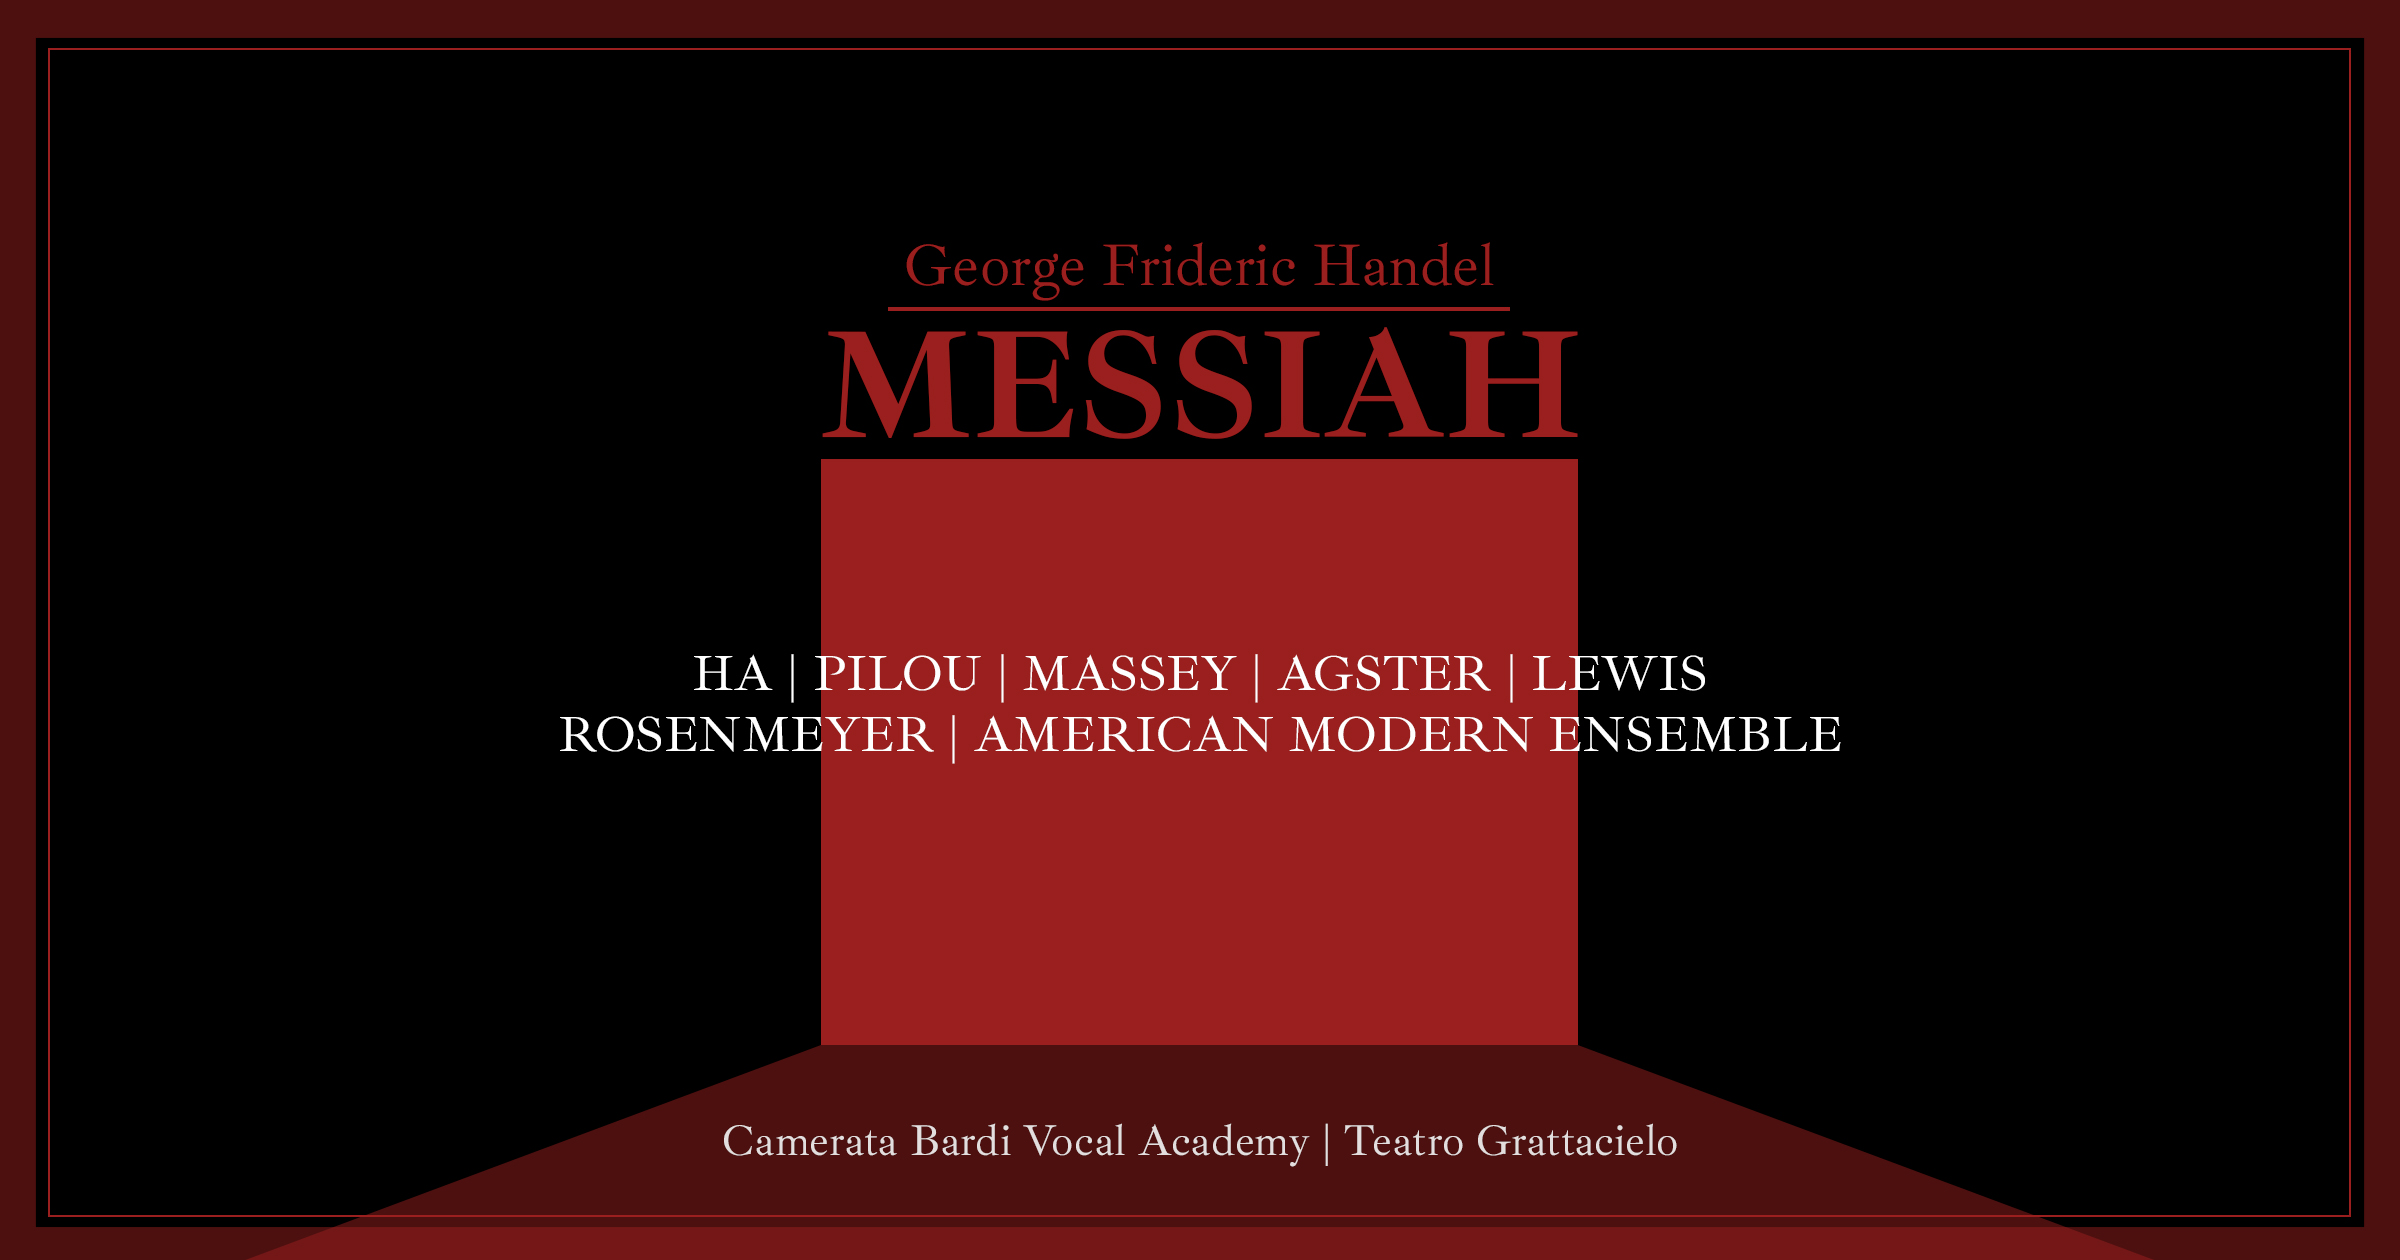 George Frideric Handel | MESSIAH | First Part